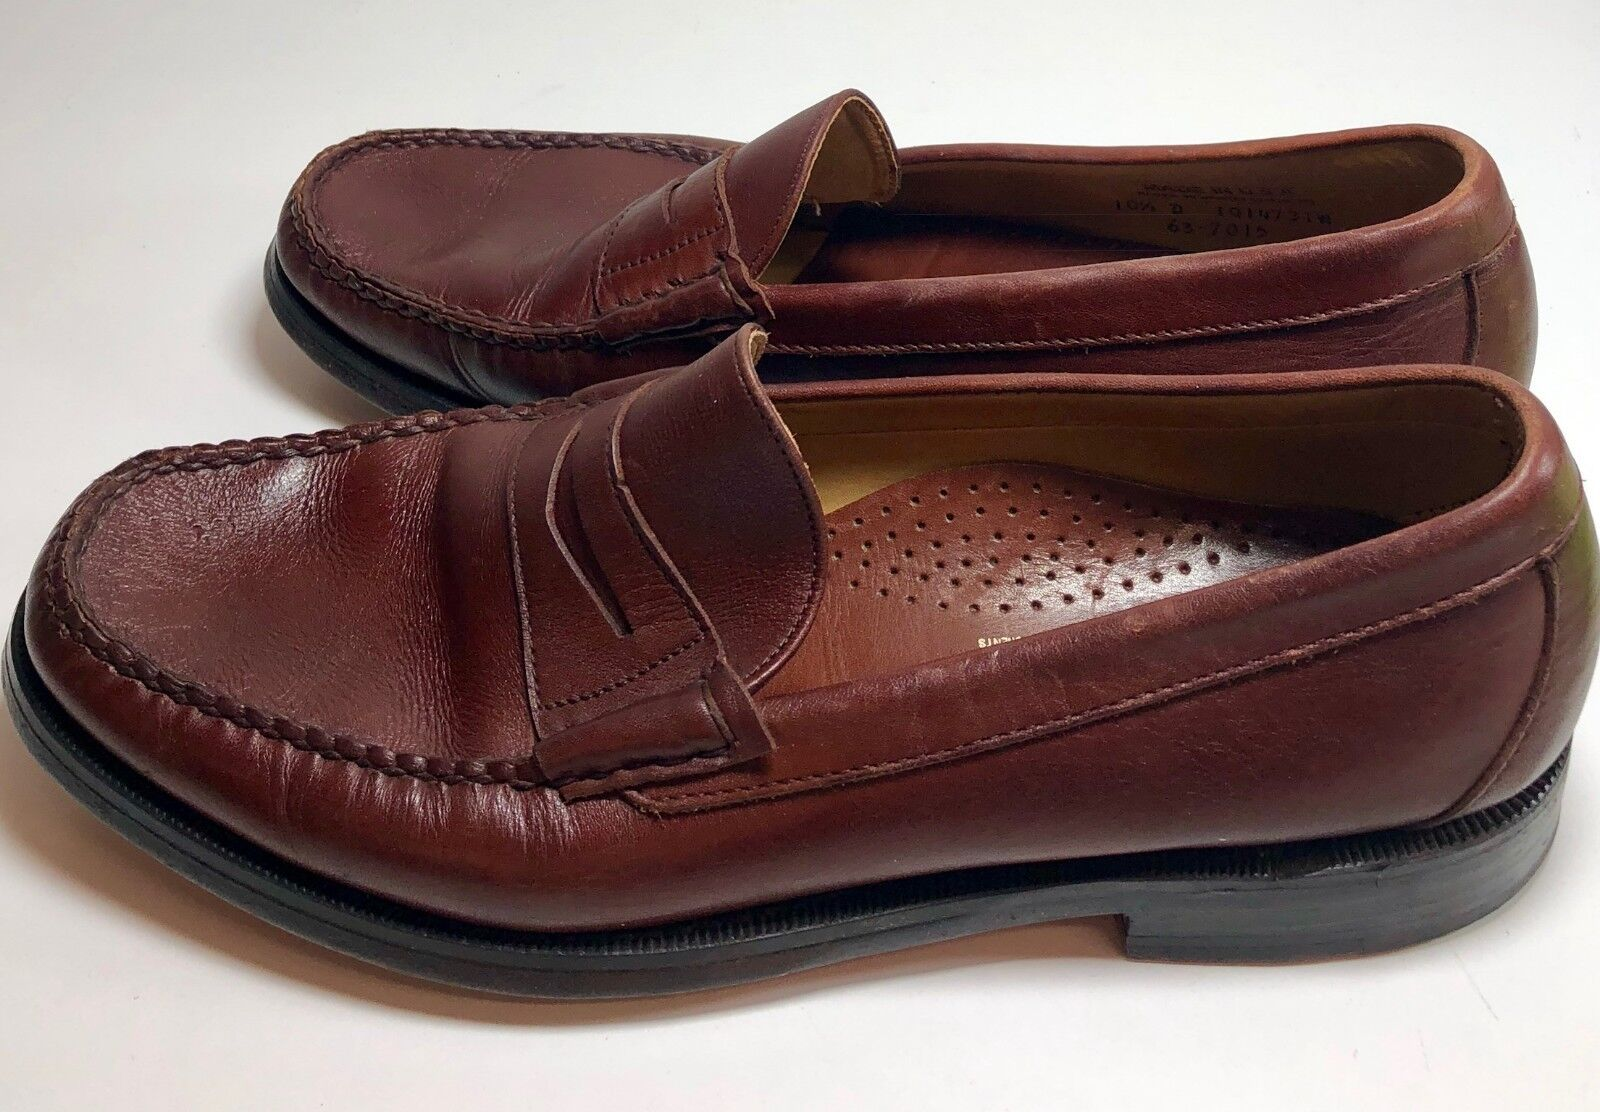 SEBAGO Men's Leather Casual Penny Loafers Brown Dress Slip-On shoes Size 10.5 D